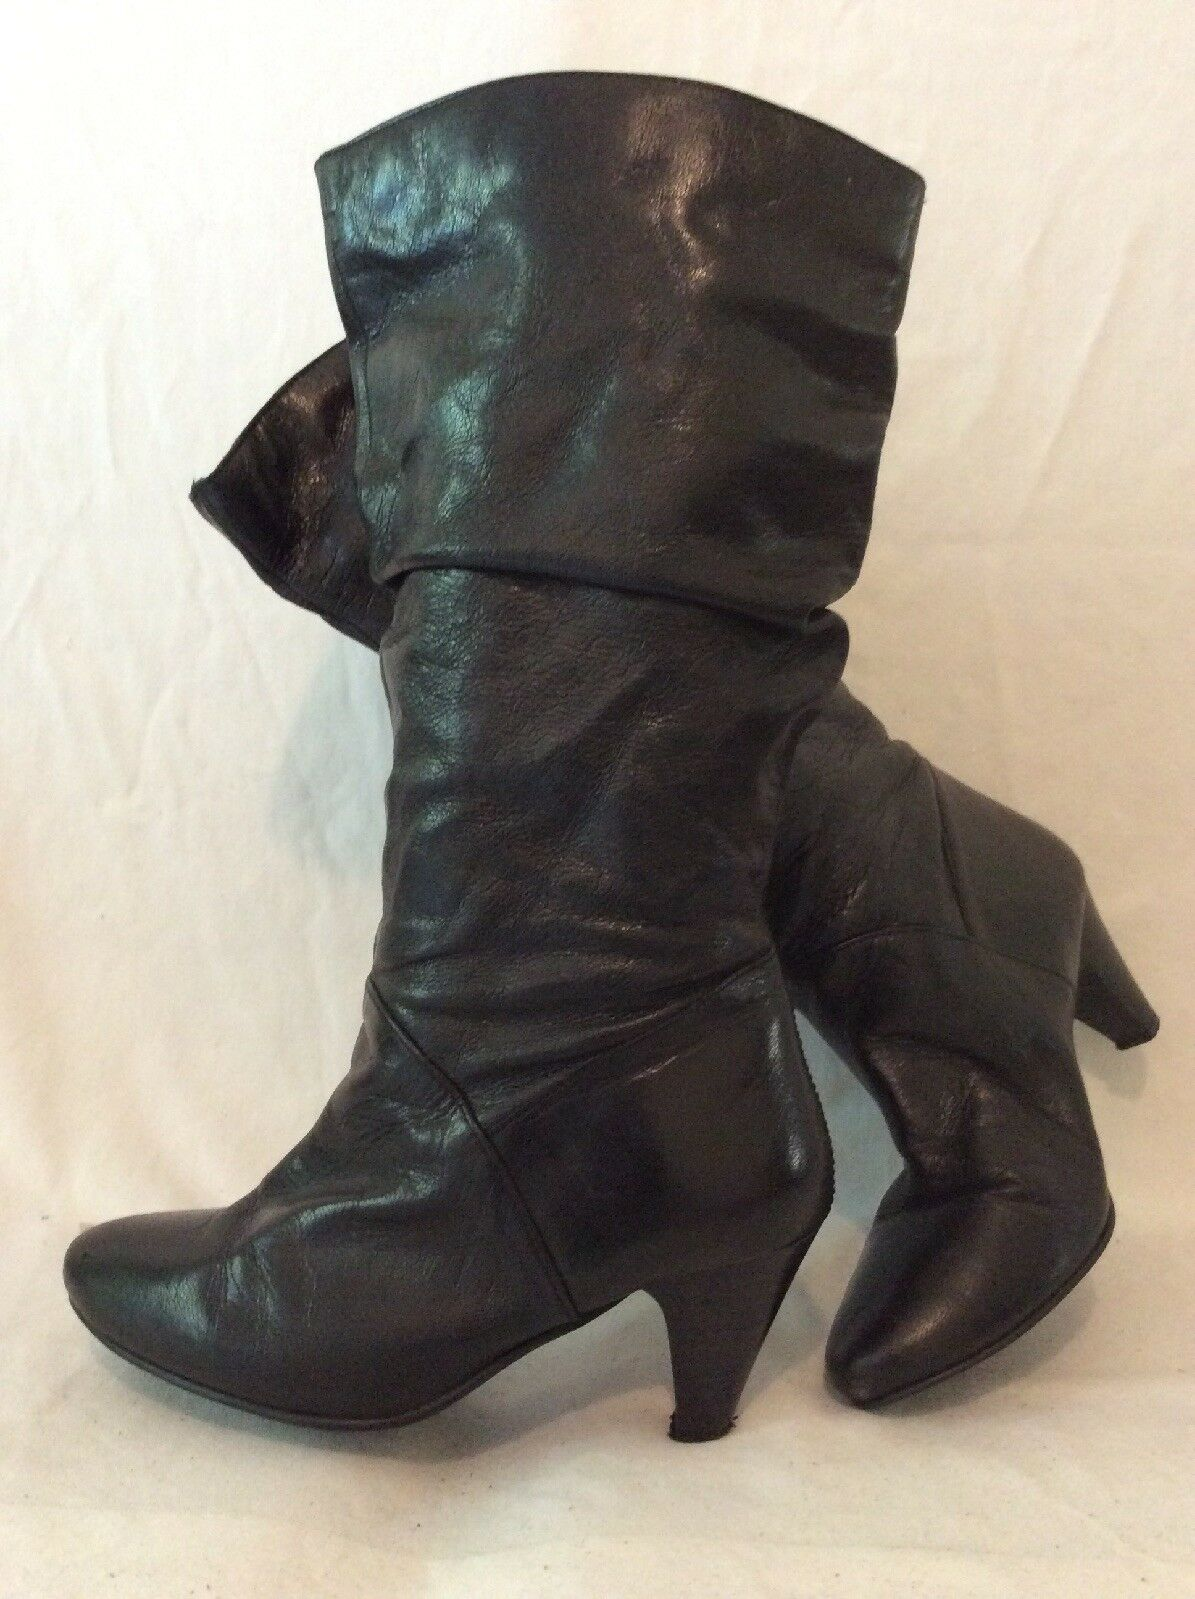 Dgoldthy Perkins Black Knee High Leather Boots Size 5